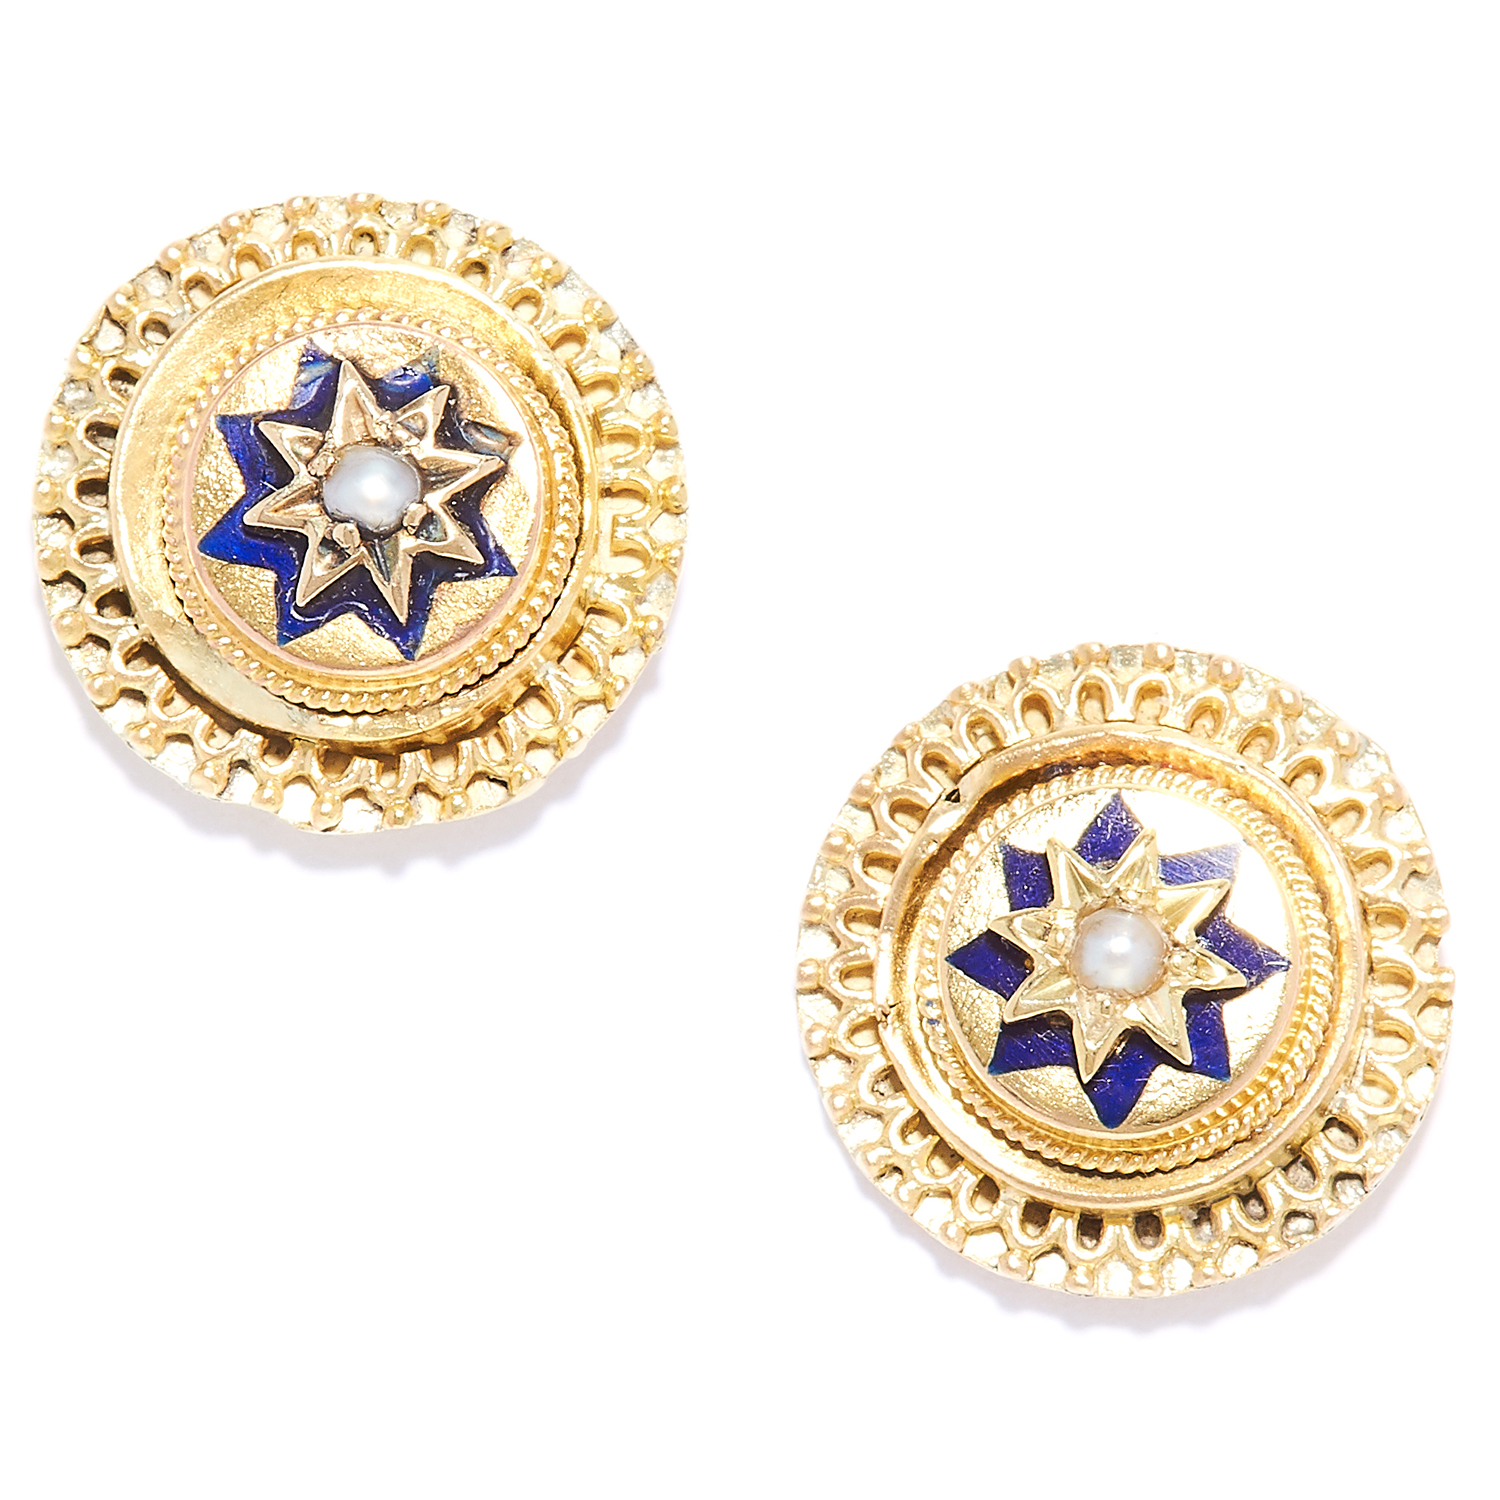 Los 8 - ANTIQUE PEARL AND ENAMEL ETRUSCAN REVIVAL EARRINGS in high carat yellow gold, each set with blue